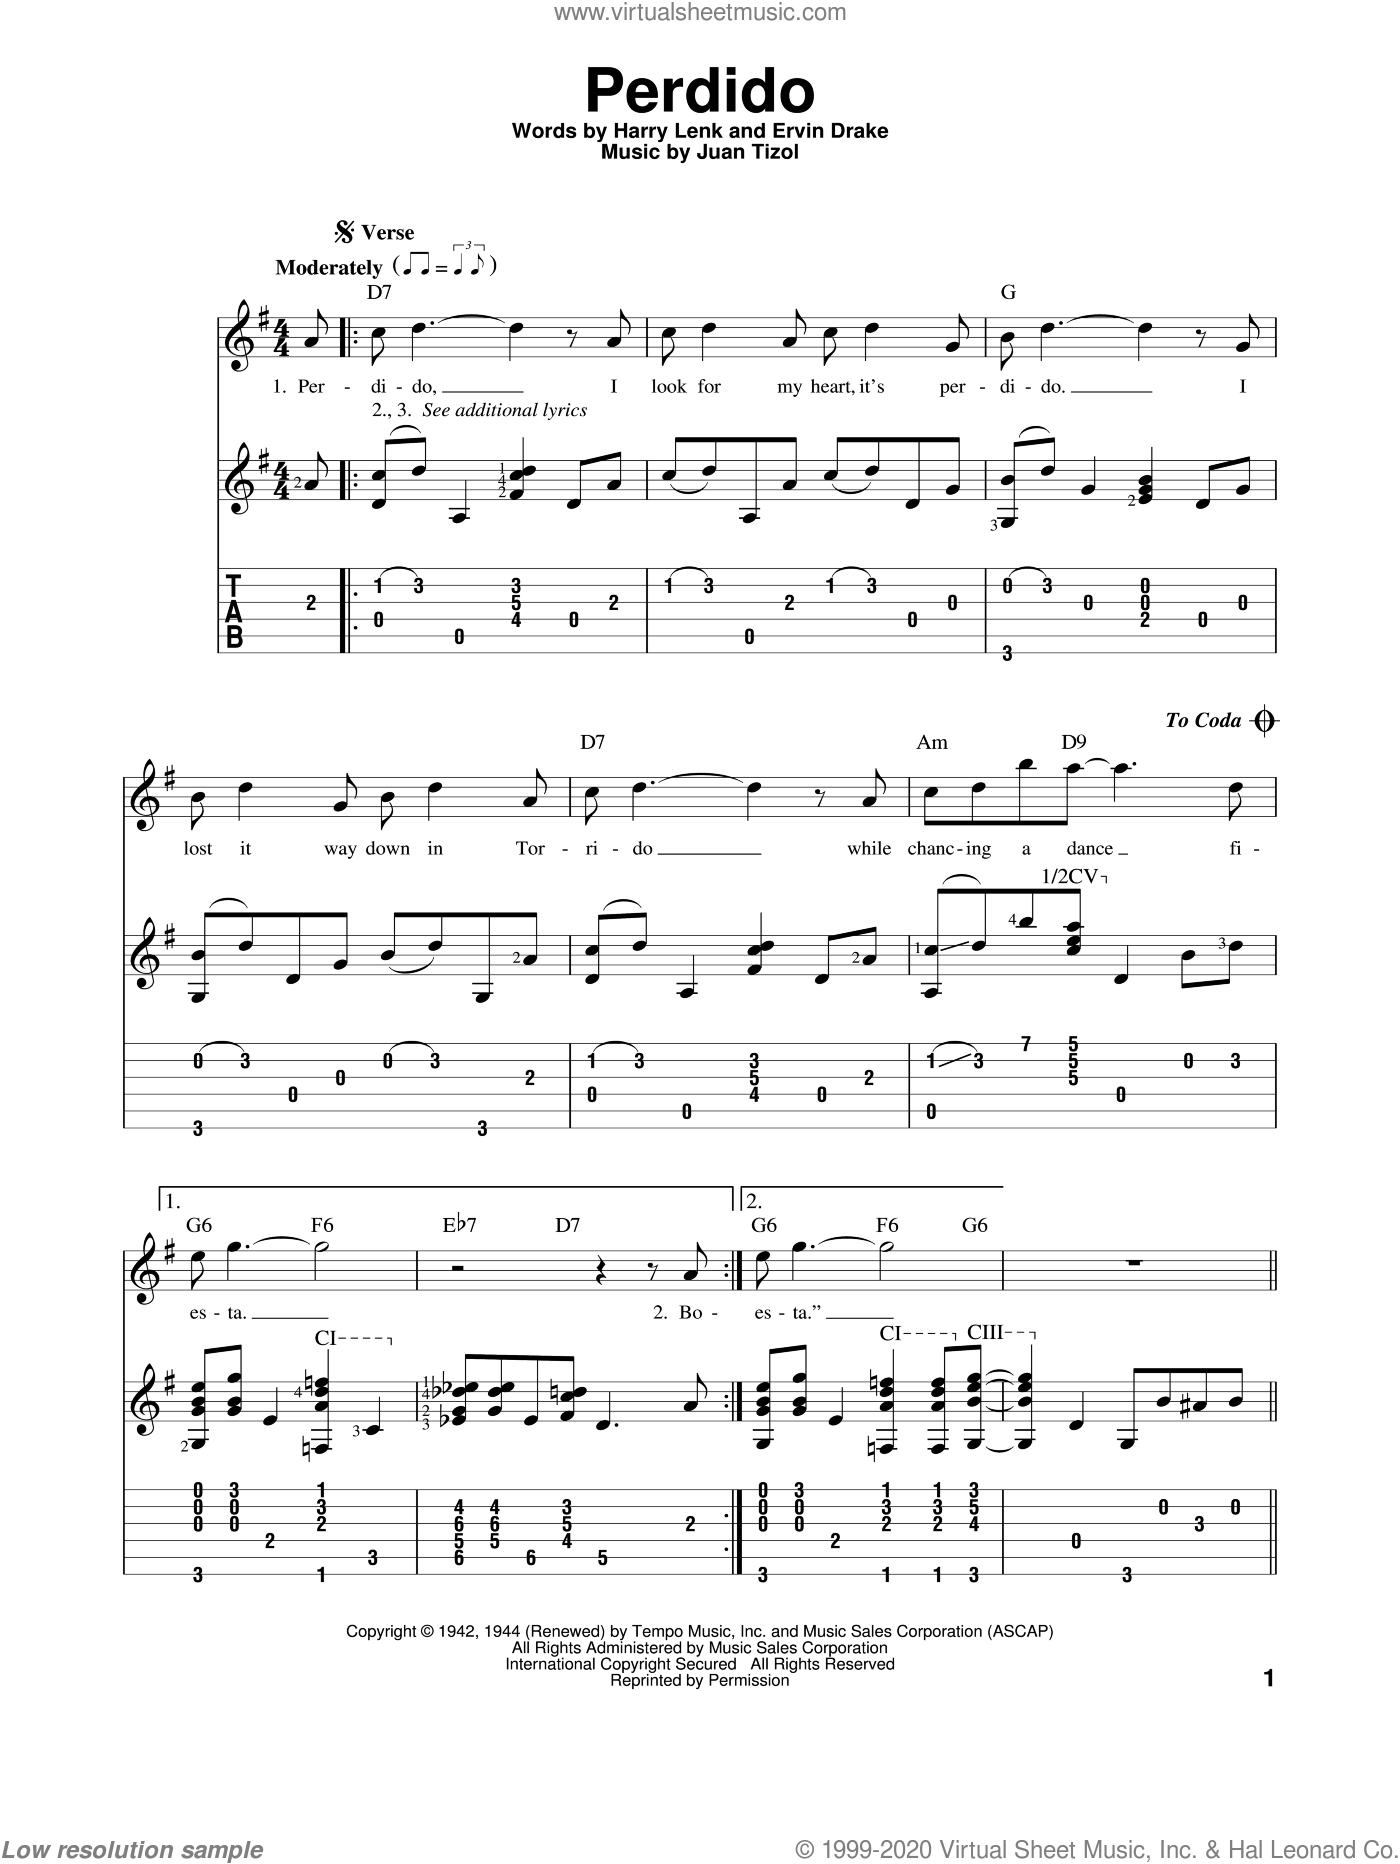 Perdido sheet music for guitar solo by Juan Tizol